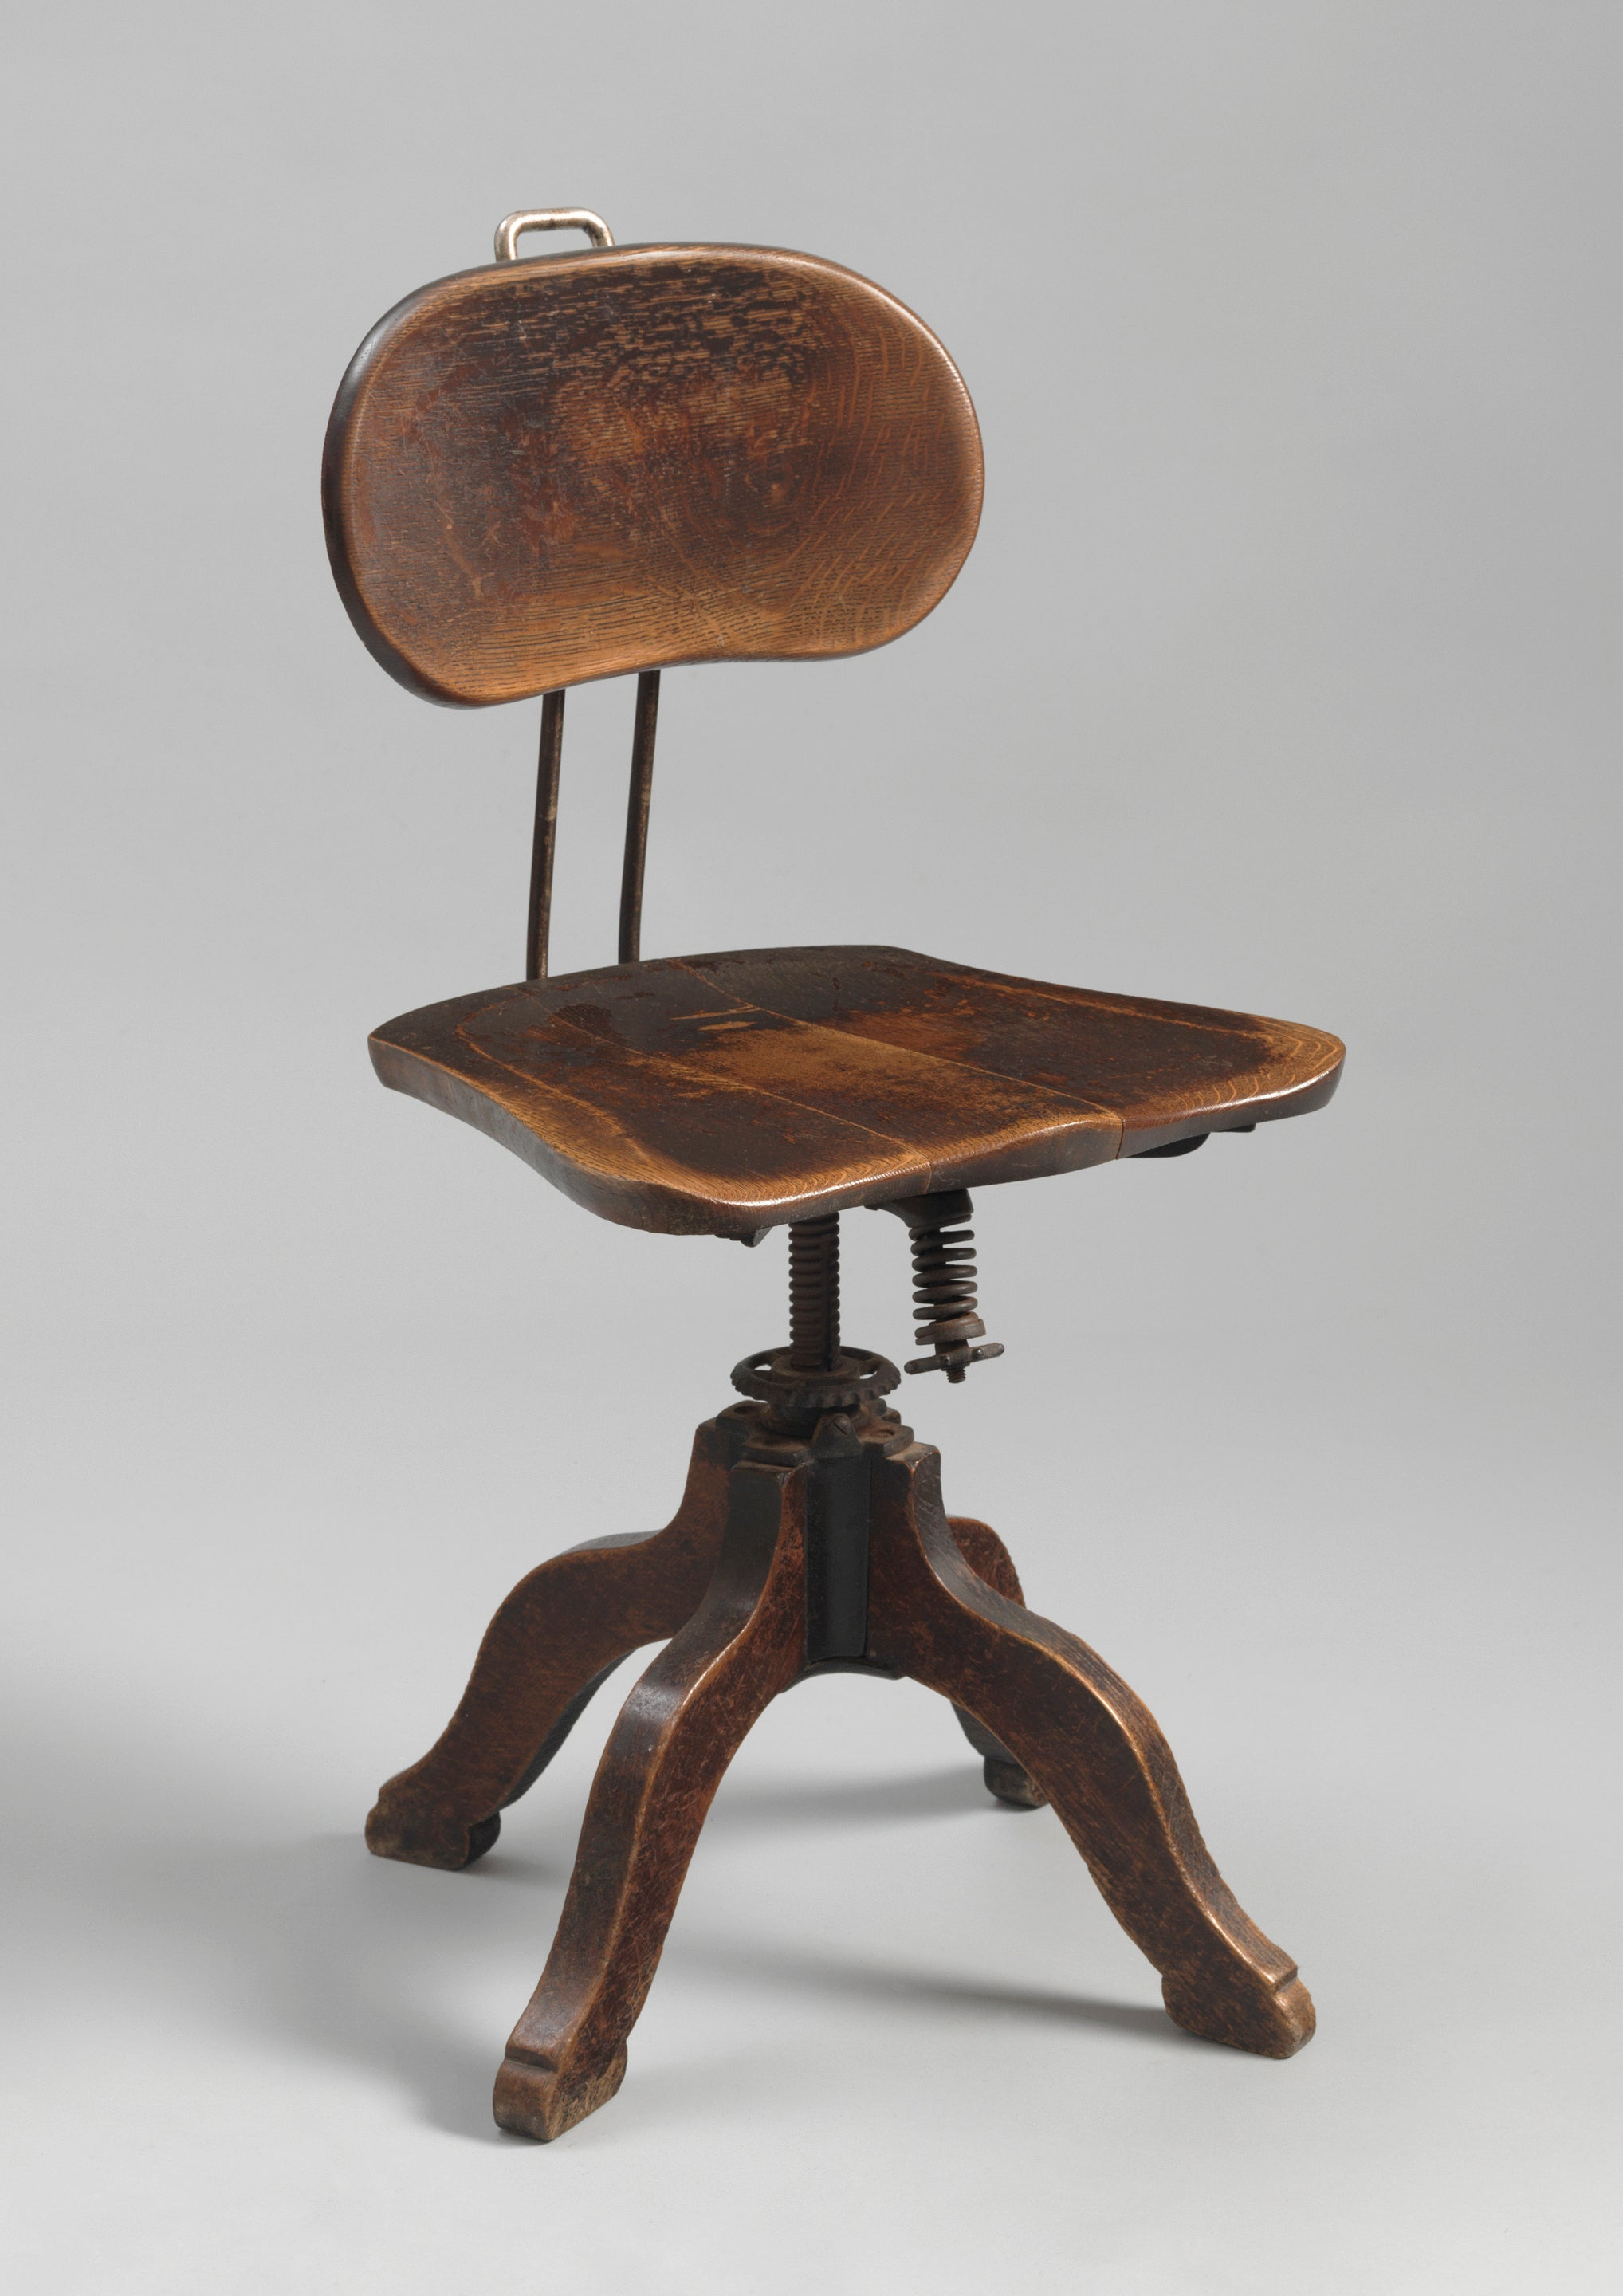 Early Adjustable Indiustrial Swivel Chair